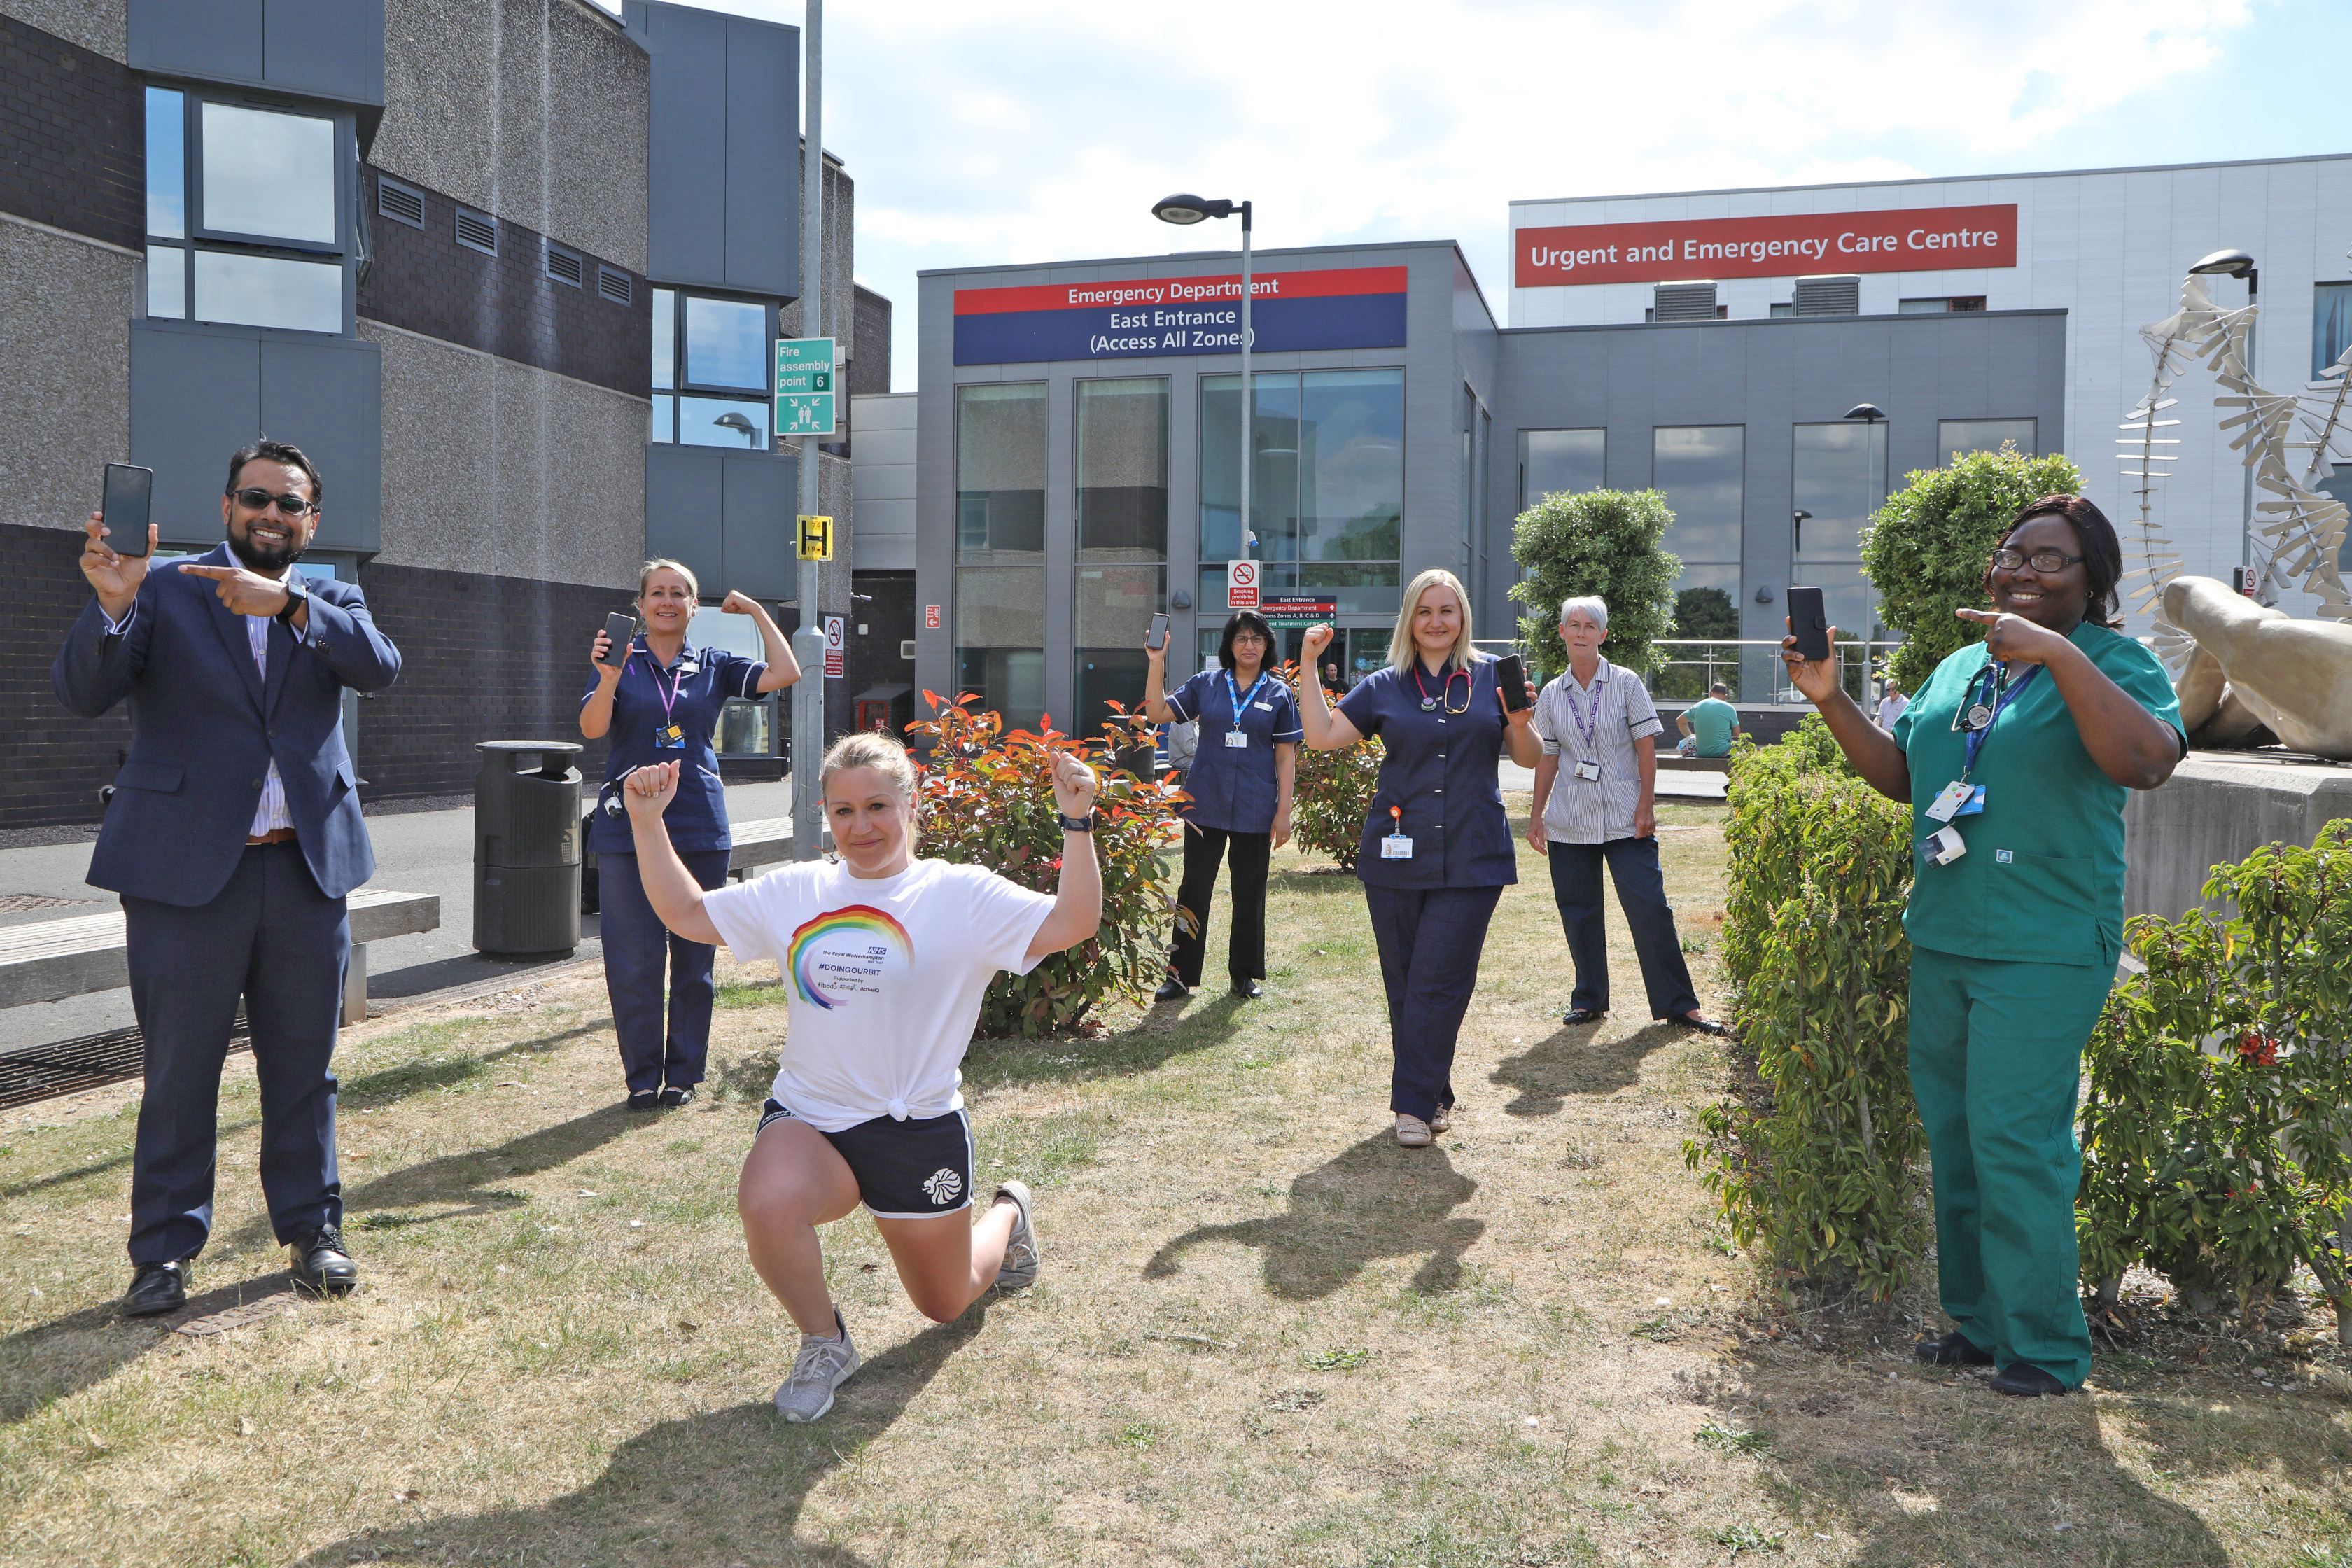 Fitness Education Business Co-creates Free Digital Fitness Platform For NHS Staff